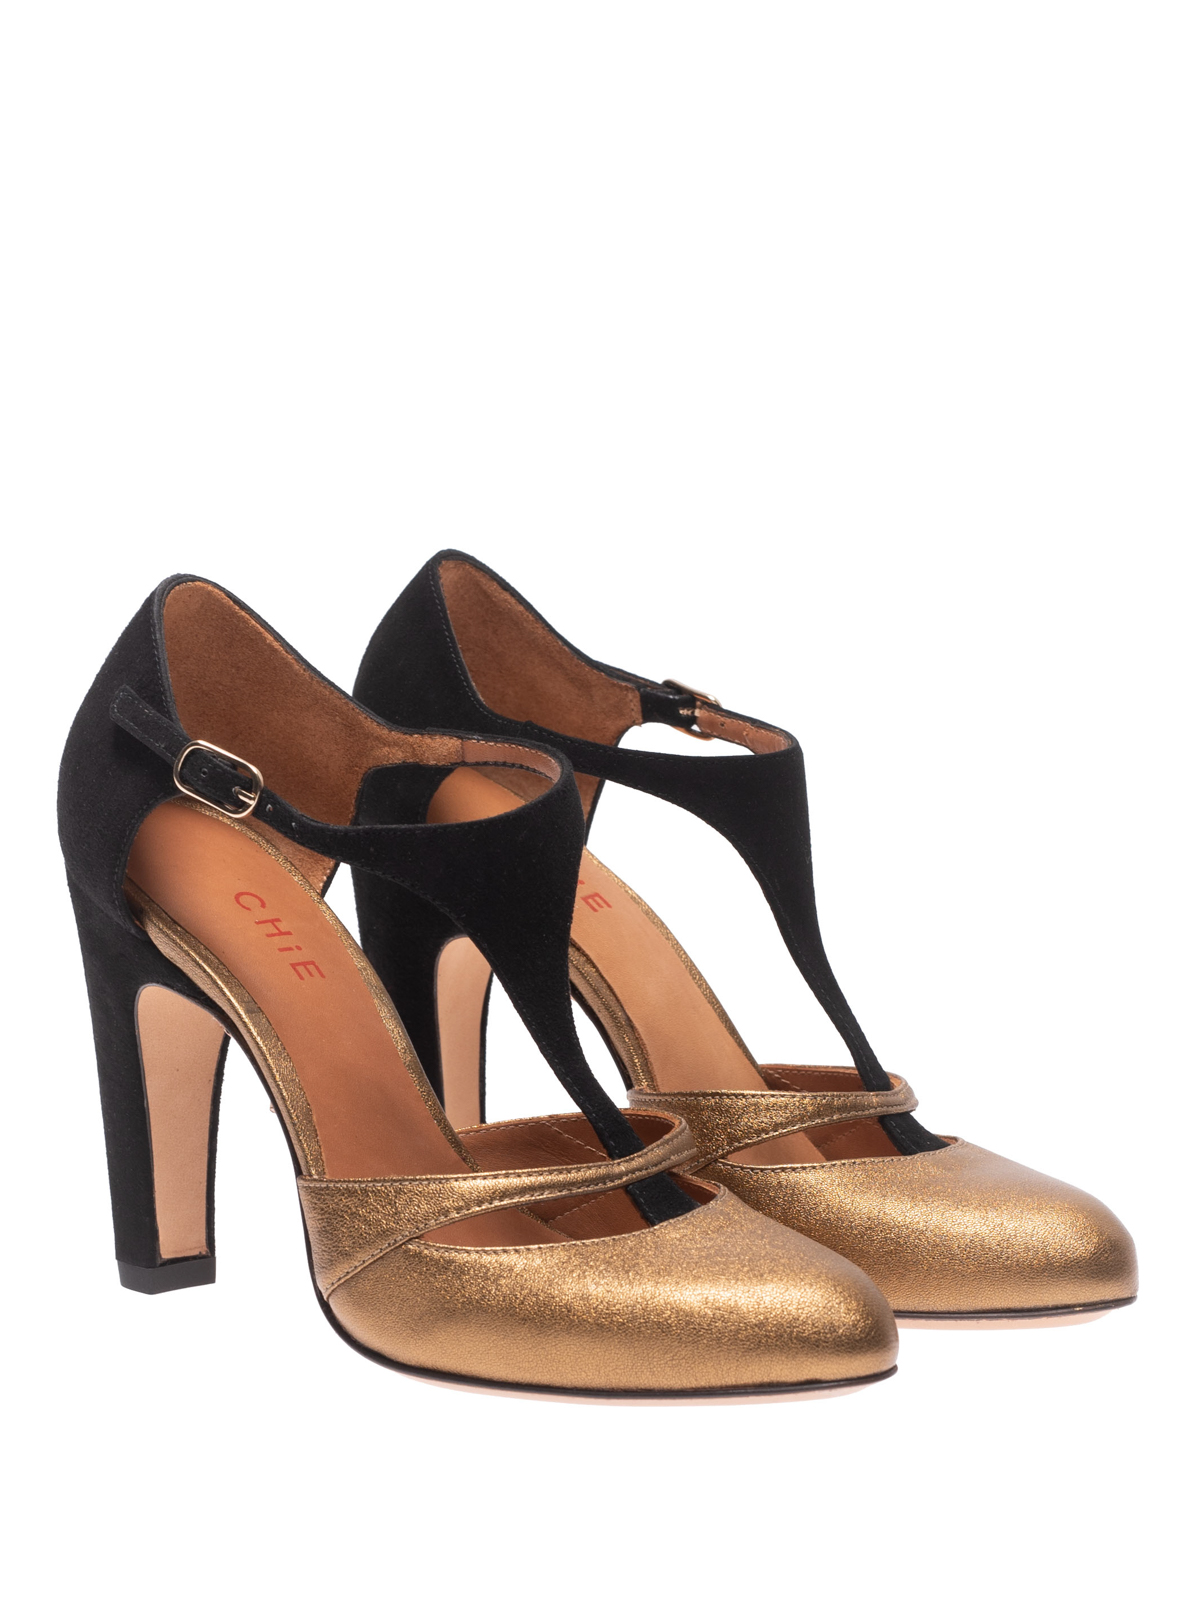 l'ultimo 90d0d b7981 Chie Mihara - Daylily two-tone pumps - court shoes - DAYLILY ...